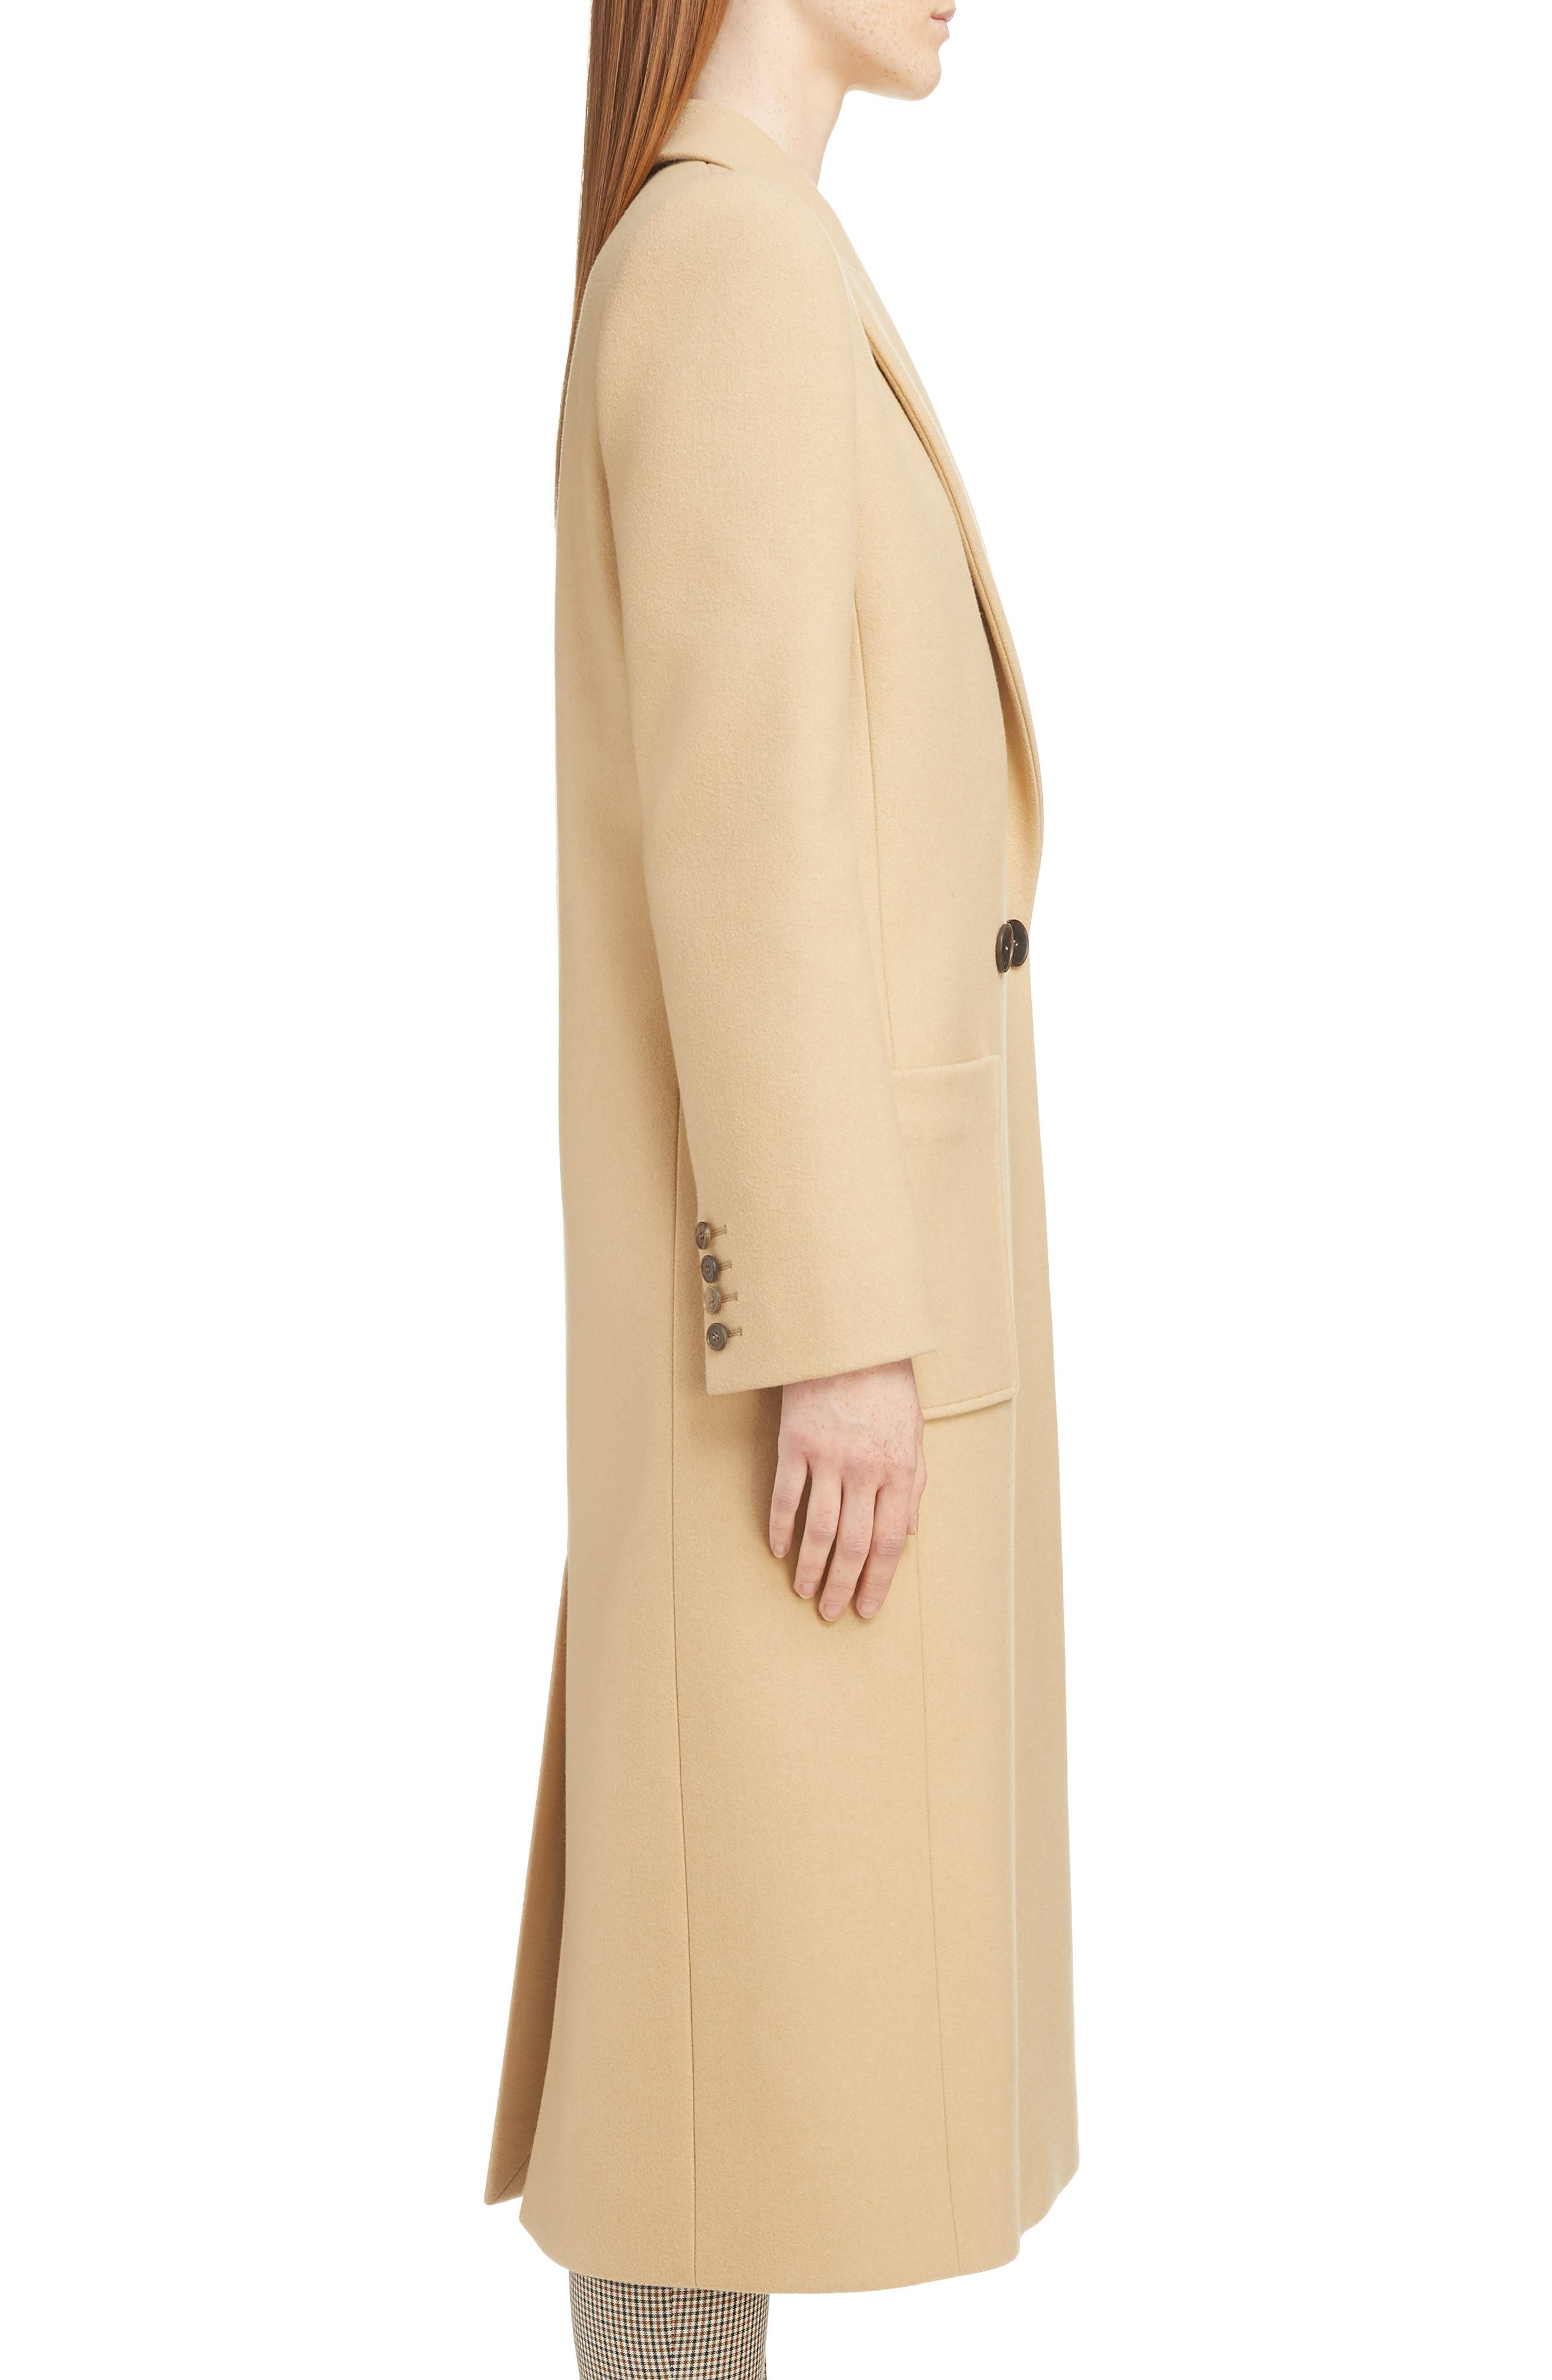 GIVENCHY,                             Double Breasted Wool Coat,                             Alternate thumbnail 3, color,                             250-BEIGE